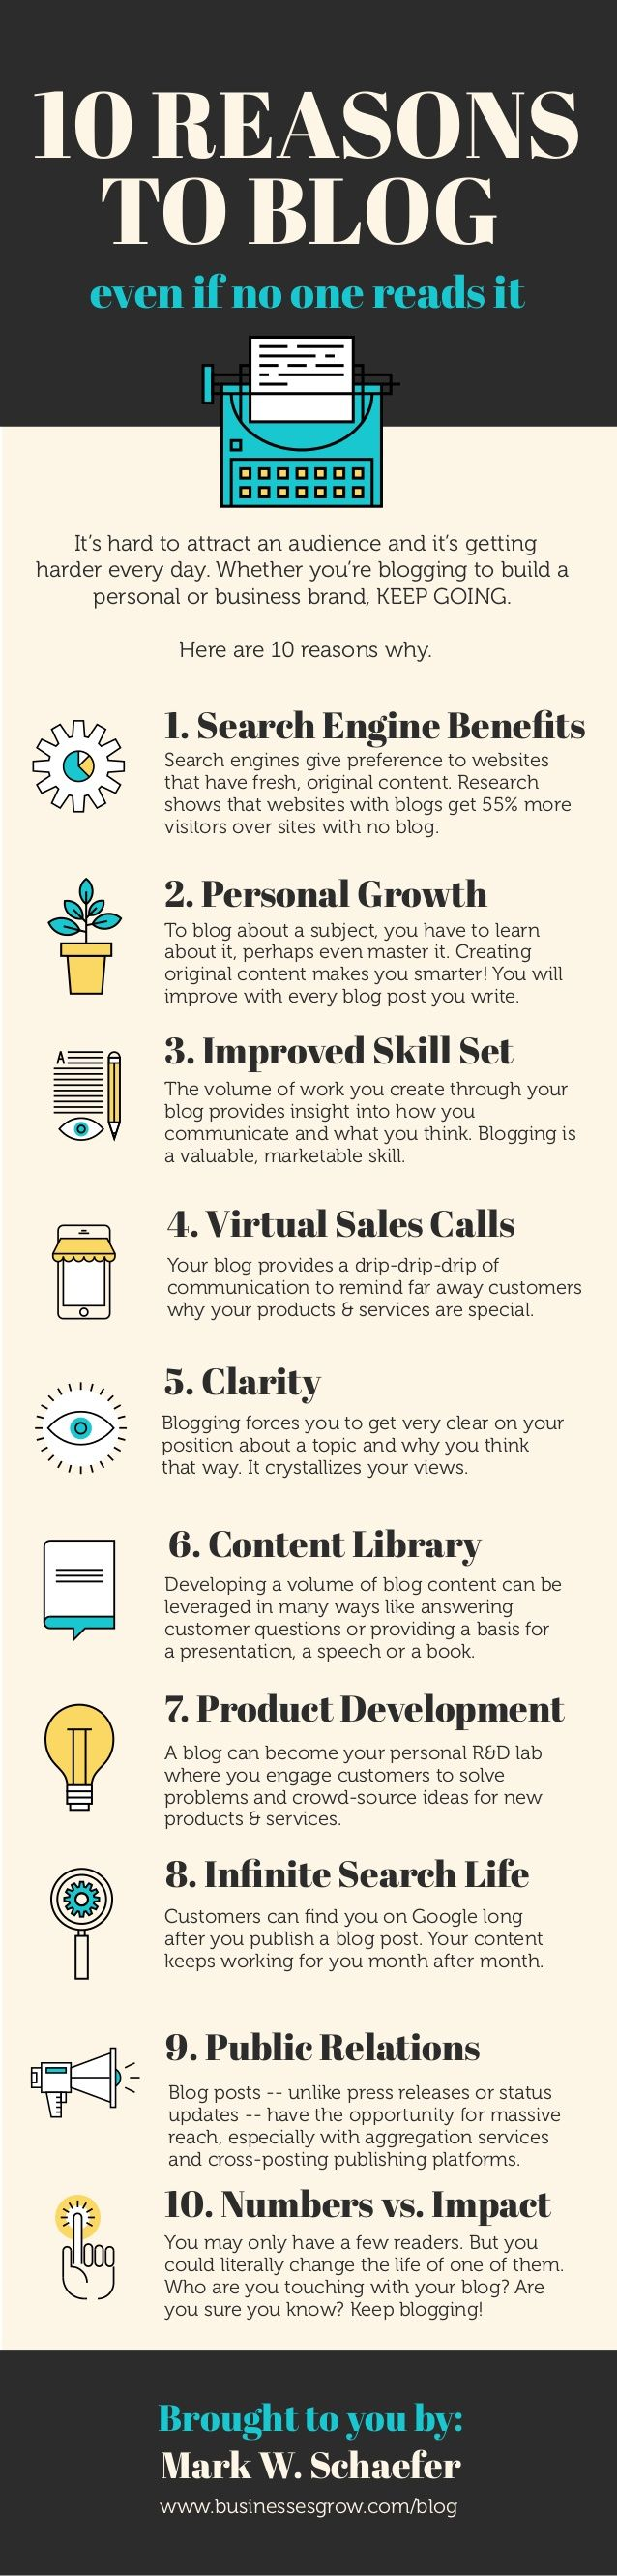 10 reasons to blog even if no one reads it